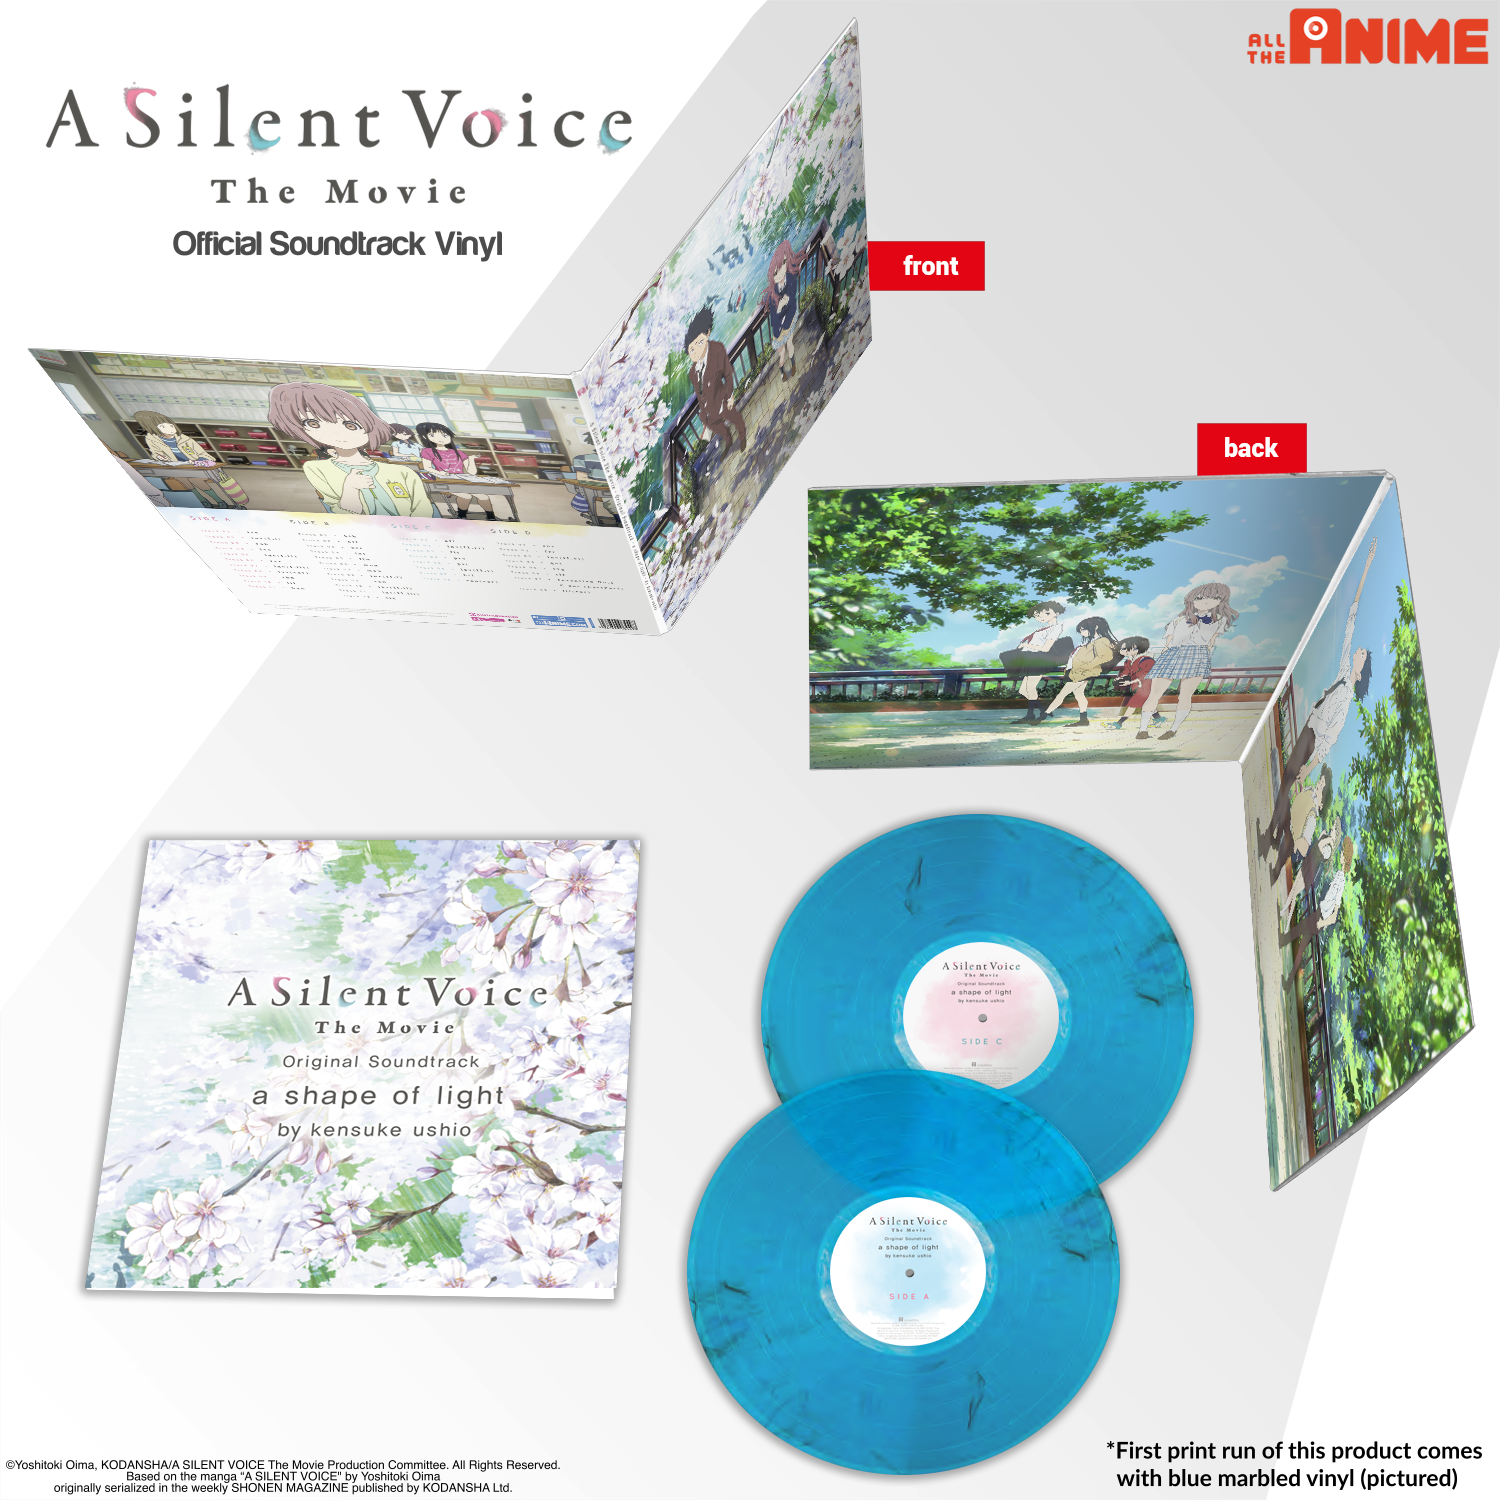 A Silent Voice Soundtrack Vinyl (first print Marbled Vinyl) - Coming 25th November 2019